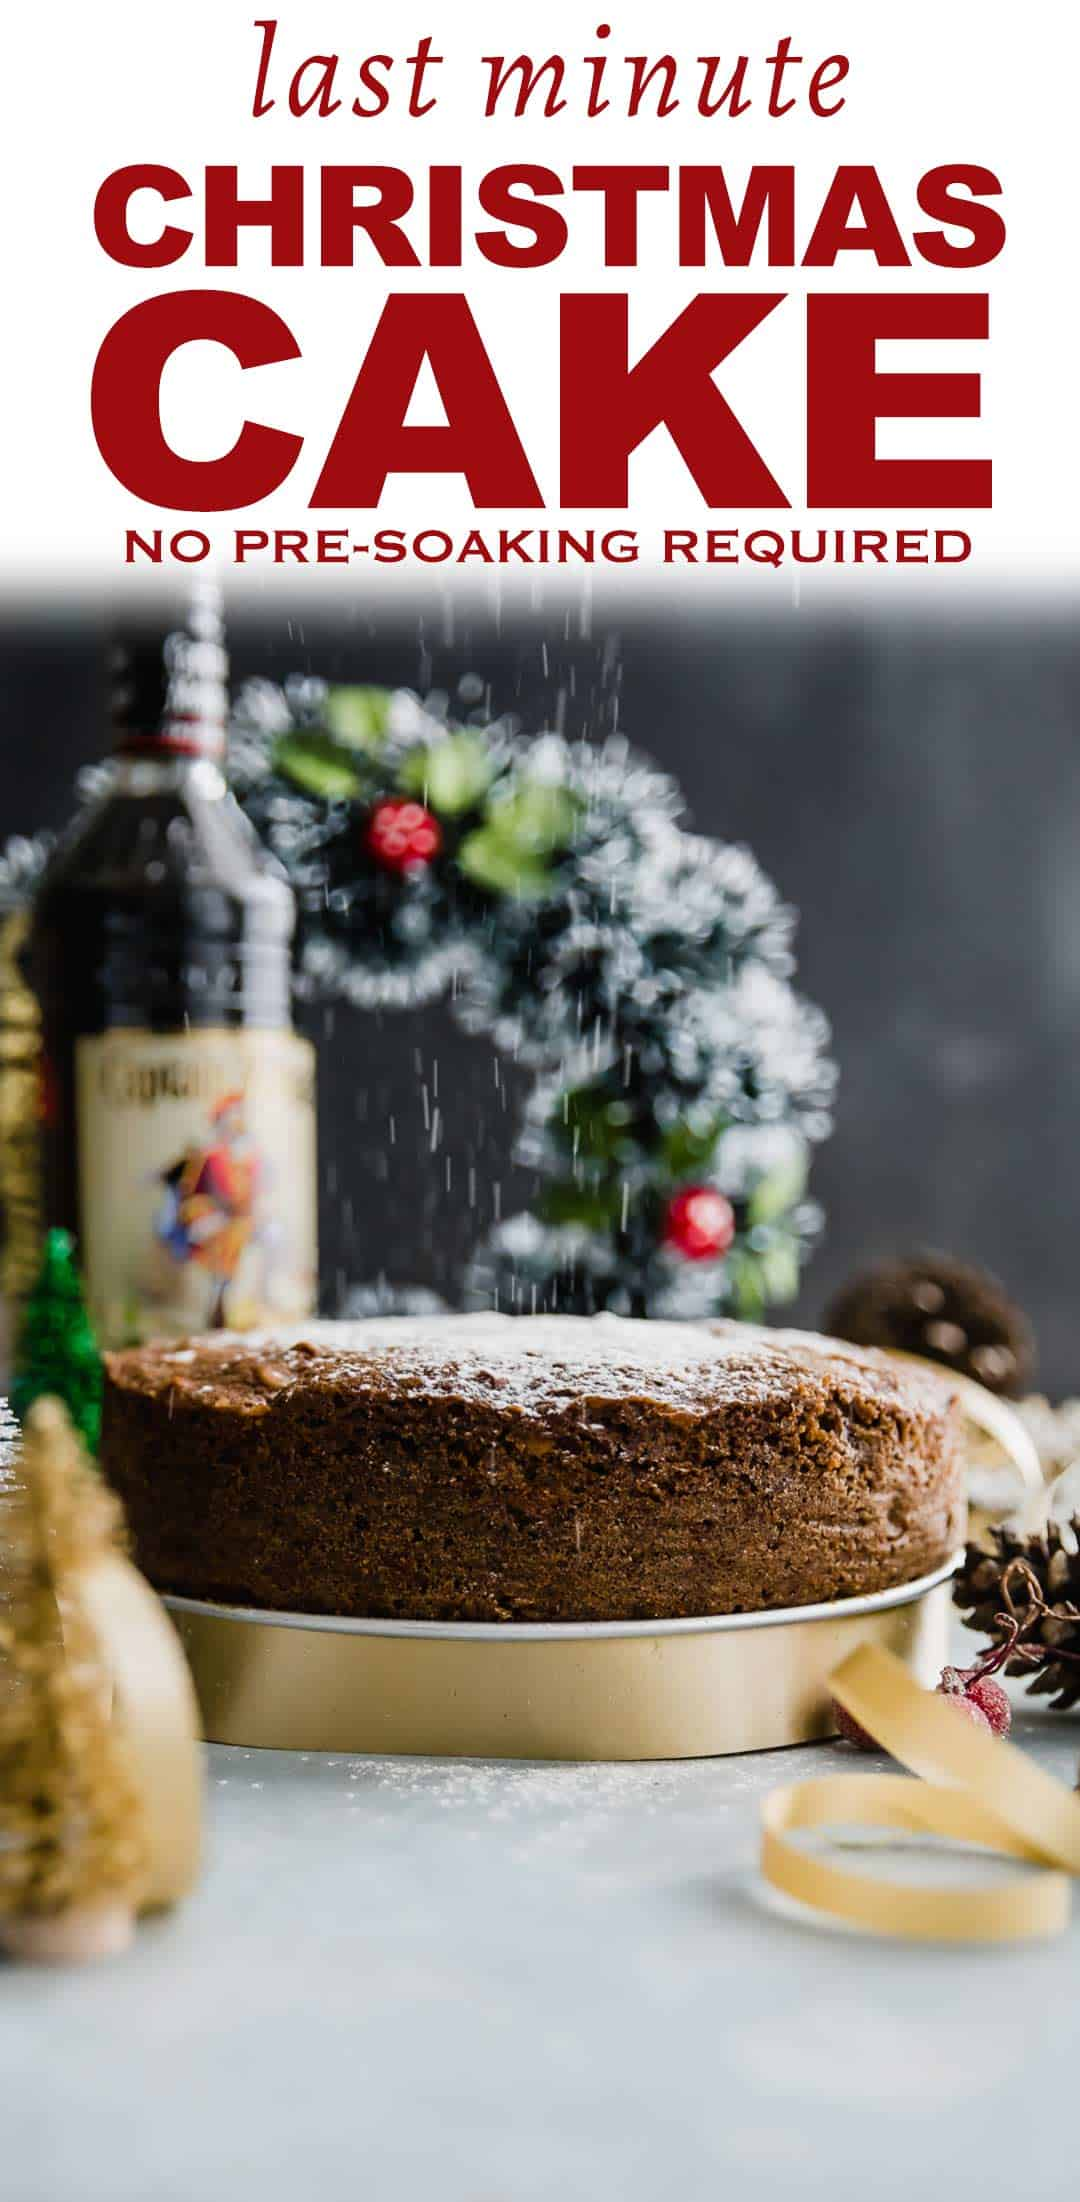 If you are looking for a last minute plum cake recipe two days before Christmas then this is it. The same intense taste, dry fruits and nuts in every bite and you don\'t need to pre-soak the dried fruit either. We use dark rum to boil the fruits but if you want a non alcoholic plum cake, use apple juice. #christmas #holiday #baking #easter